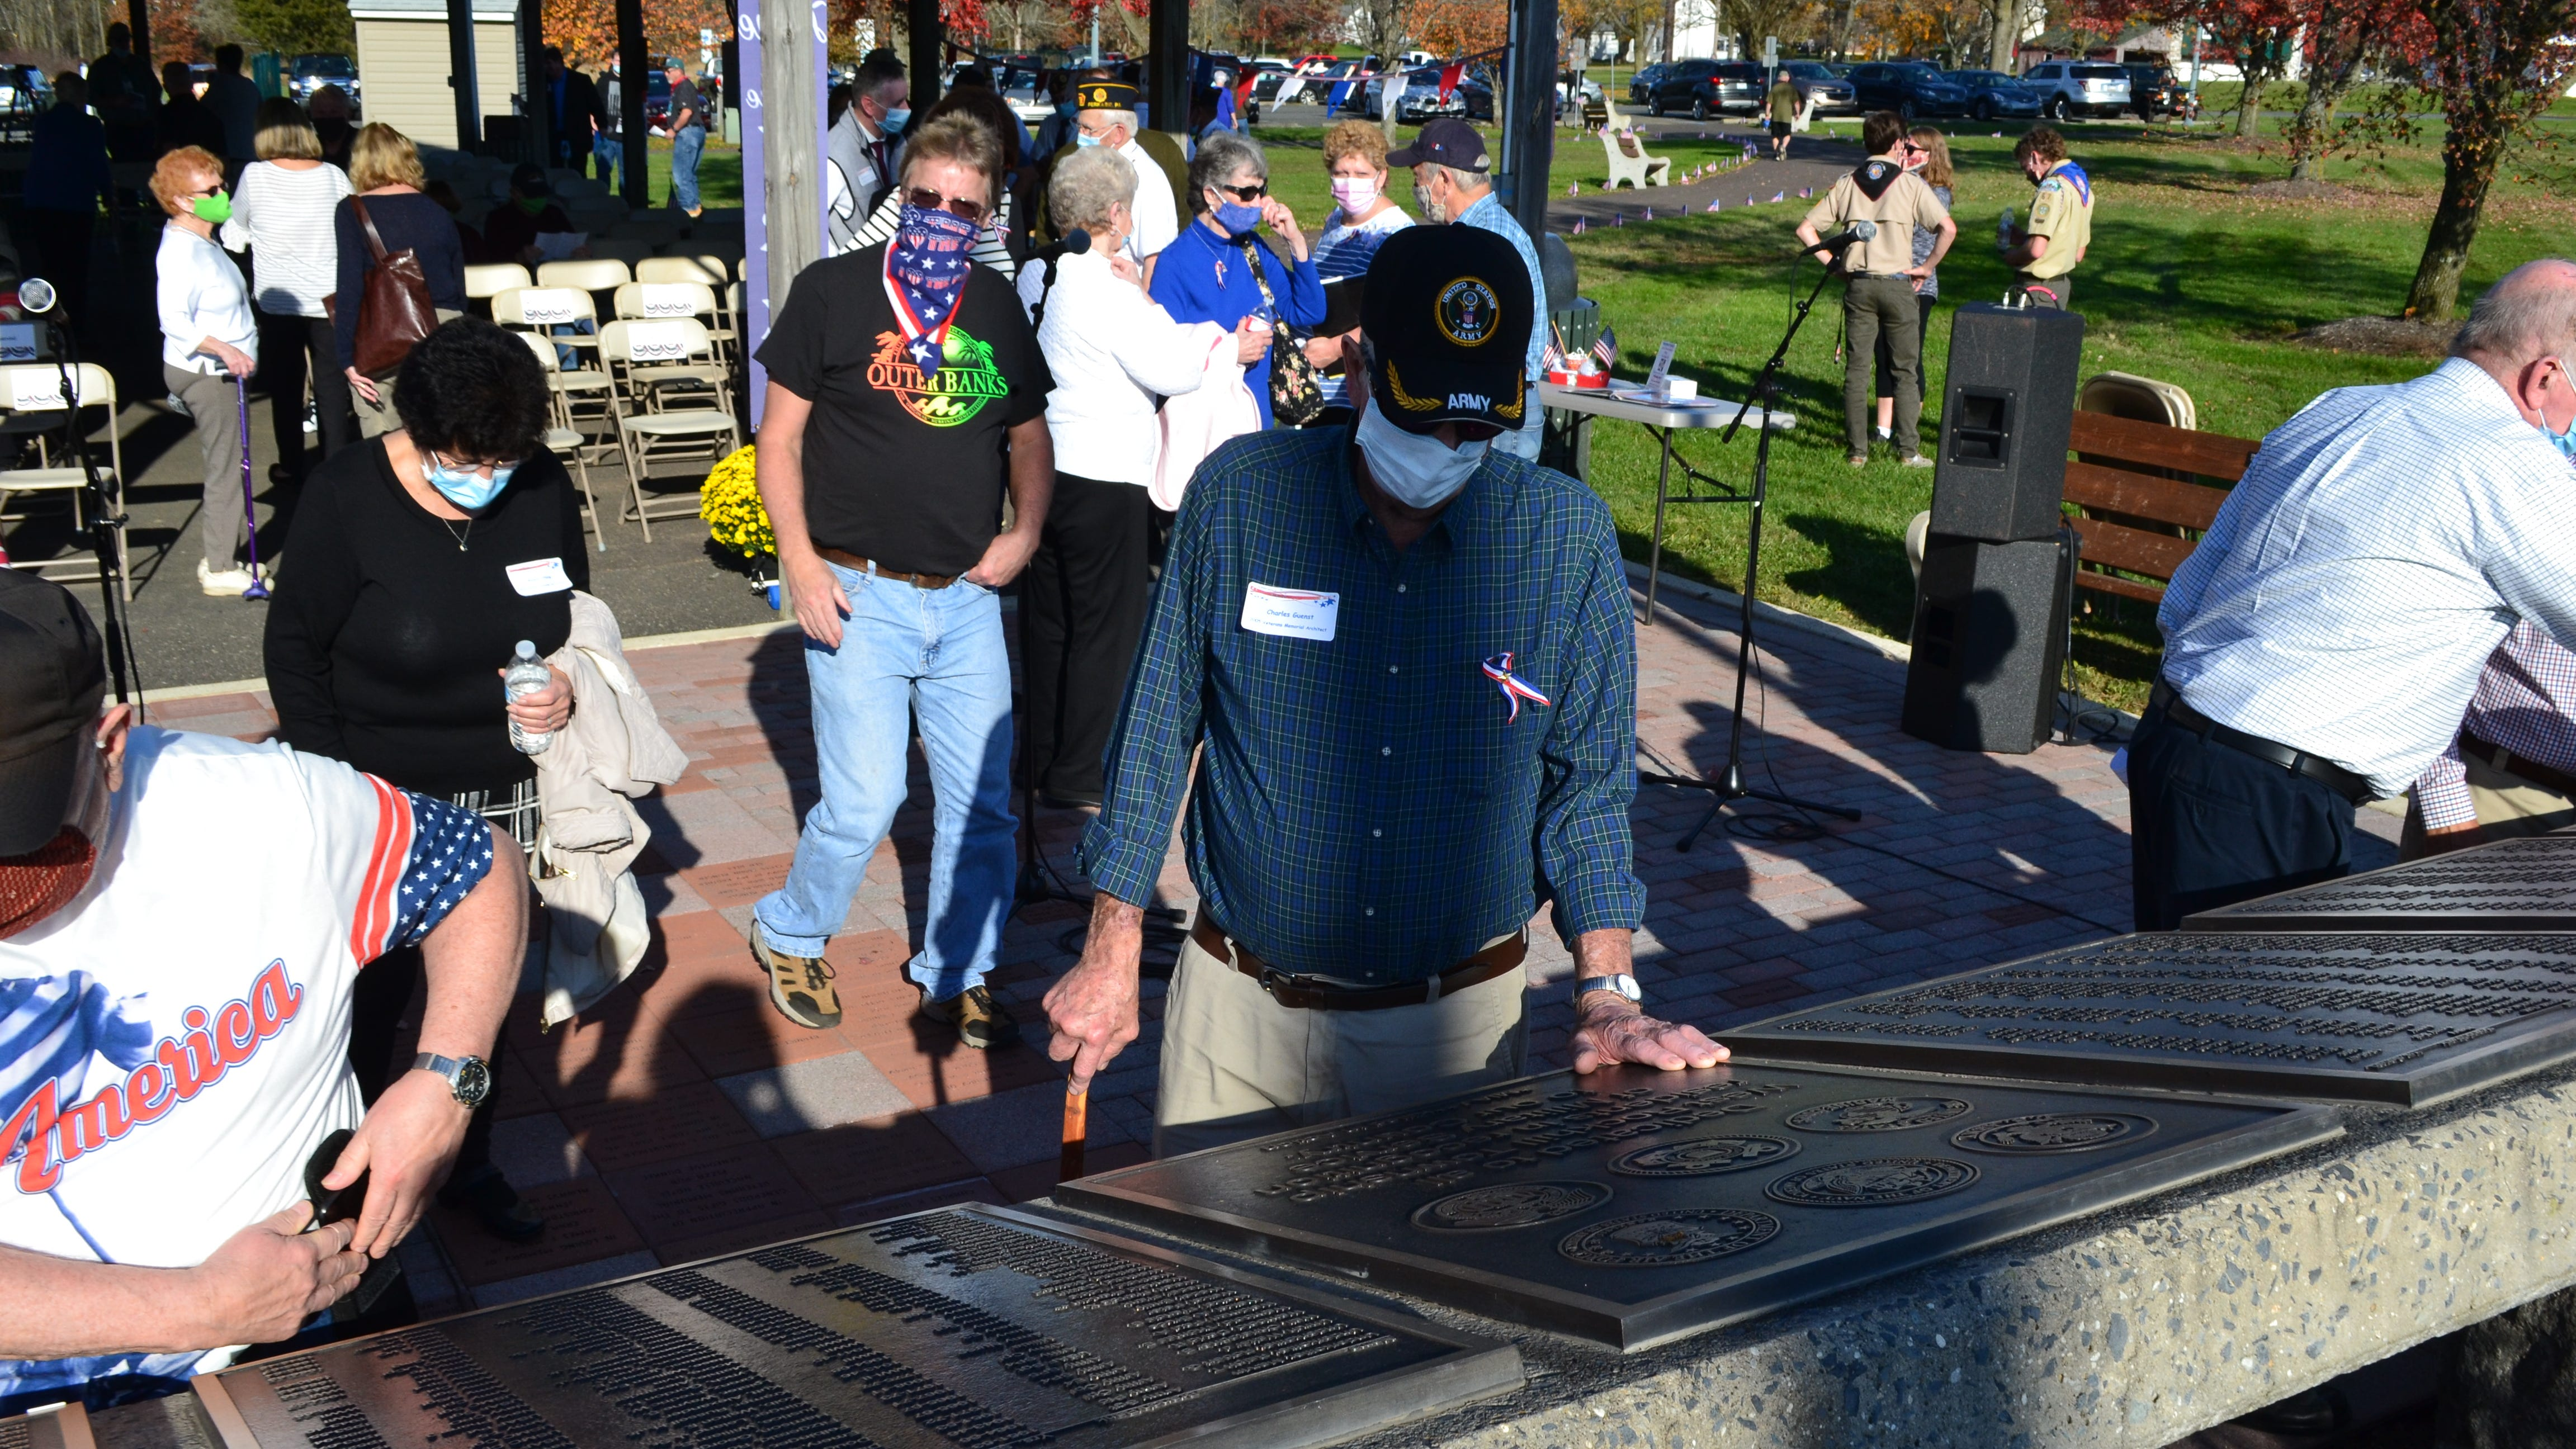 West Rockhill resident and Army Veteran Charlie Guenst  (center) looks over one of the plaques at the township's veterans memorial on Nov. 8. Guenst, who died on Dec. 13, was responsible for creating the original 391-name memorial in 2005.